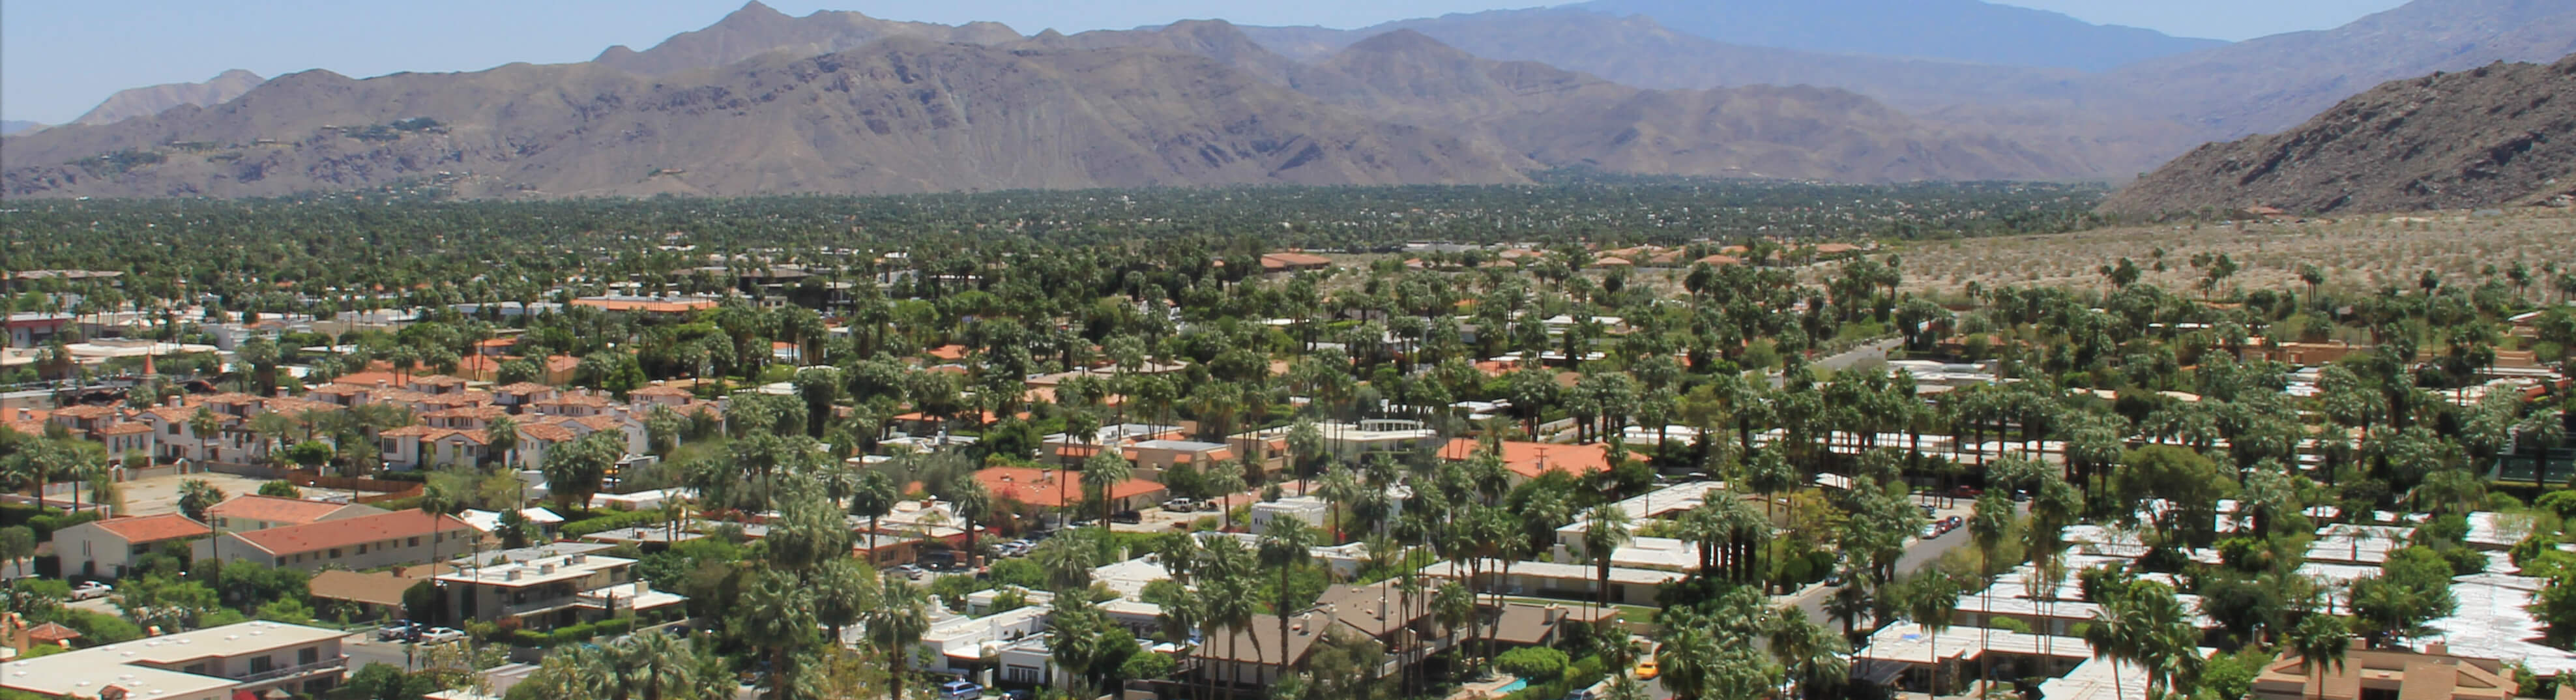 PALM-SPRINGS-PICTURE